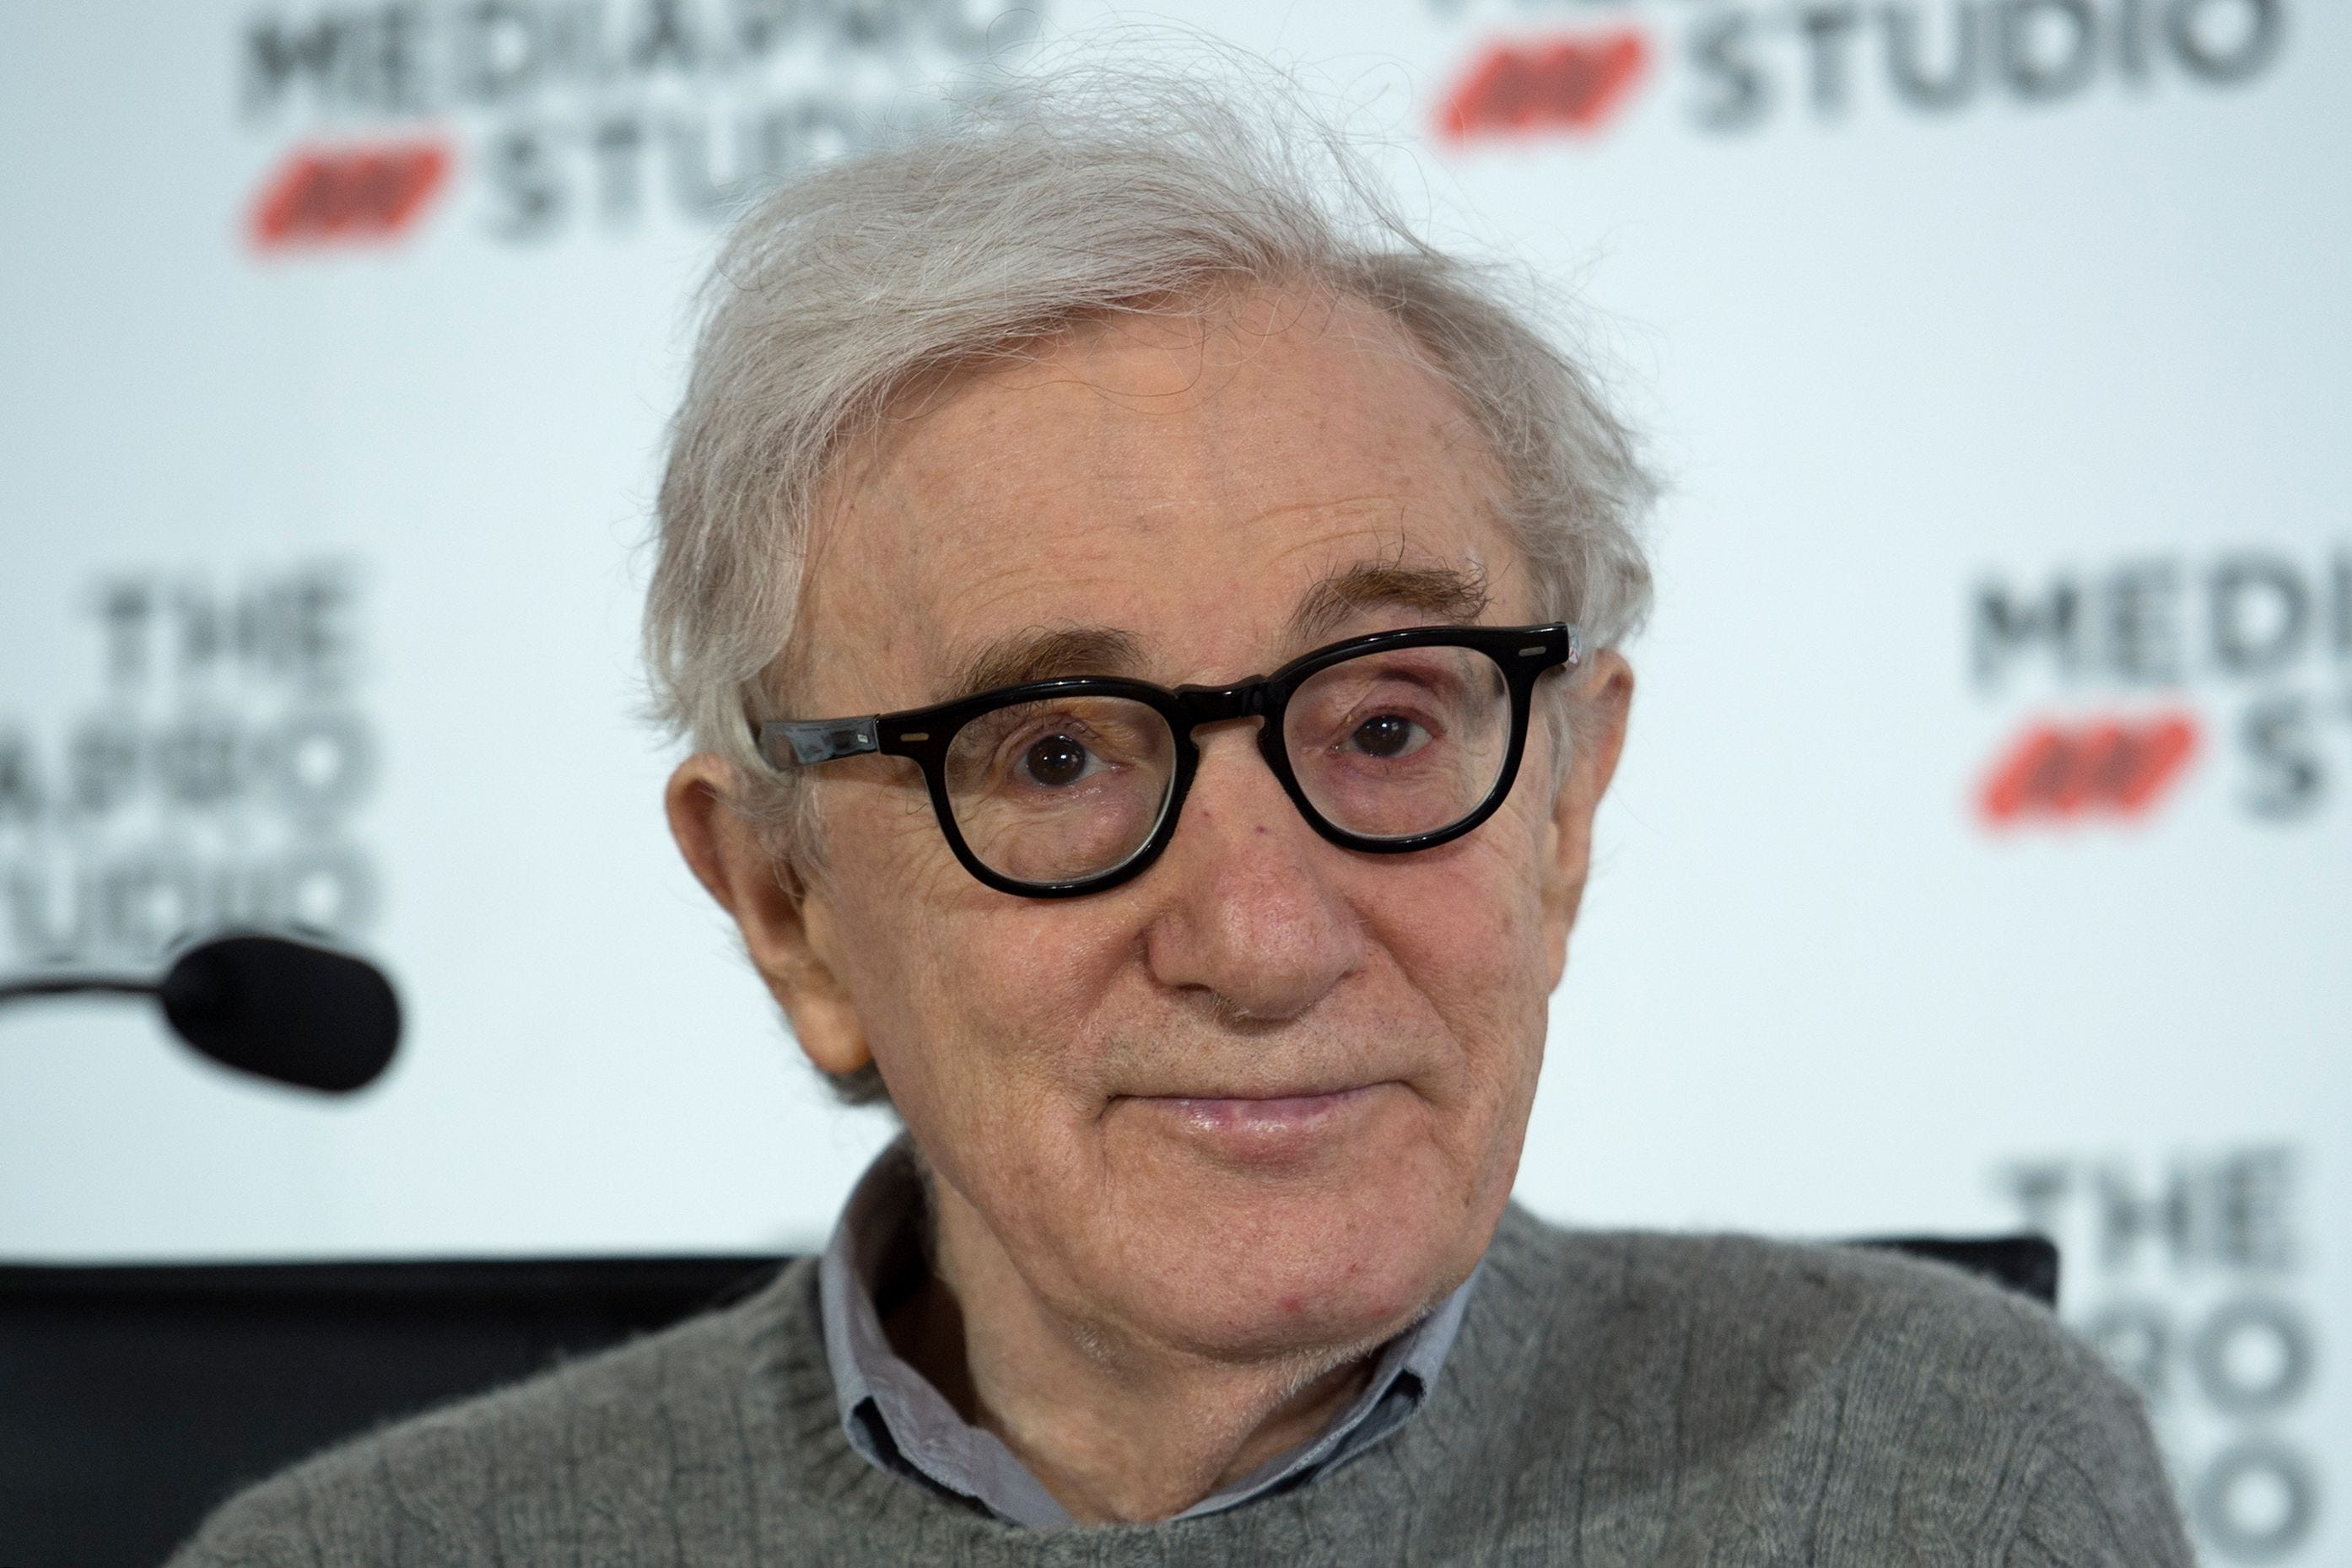 Woody Allen slams son Ronan Farrow s reporting after New York Times  criticism